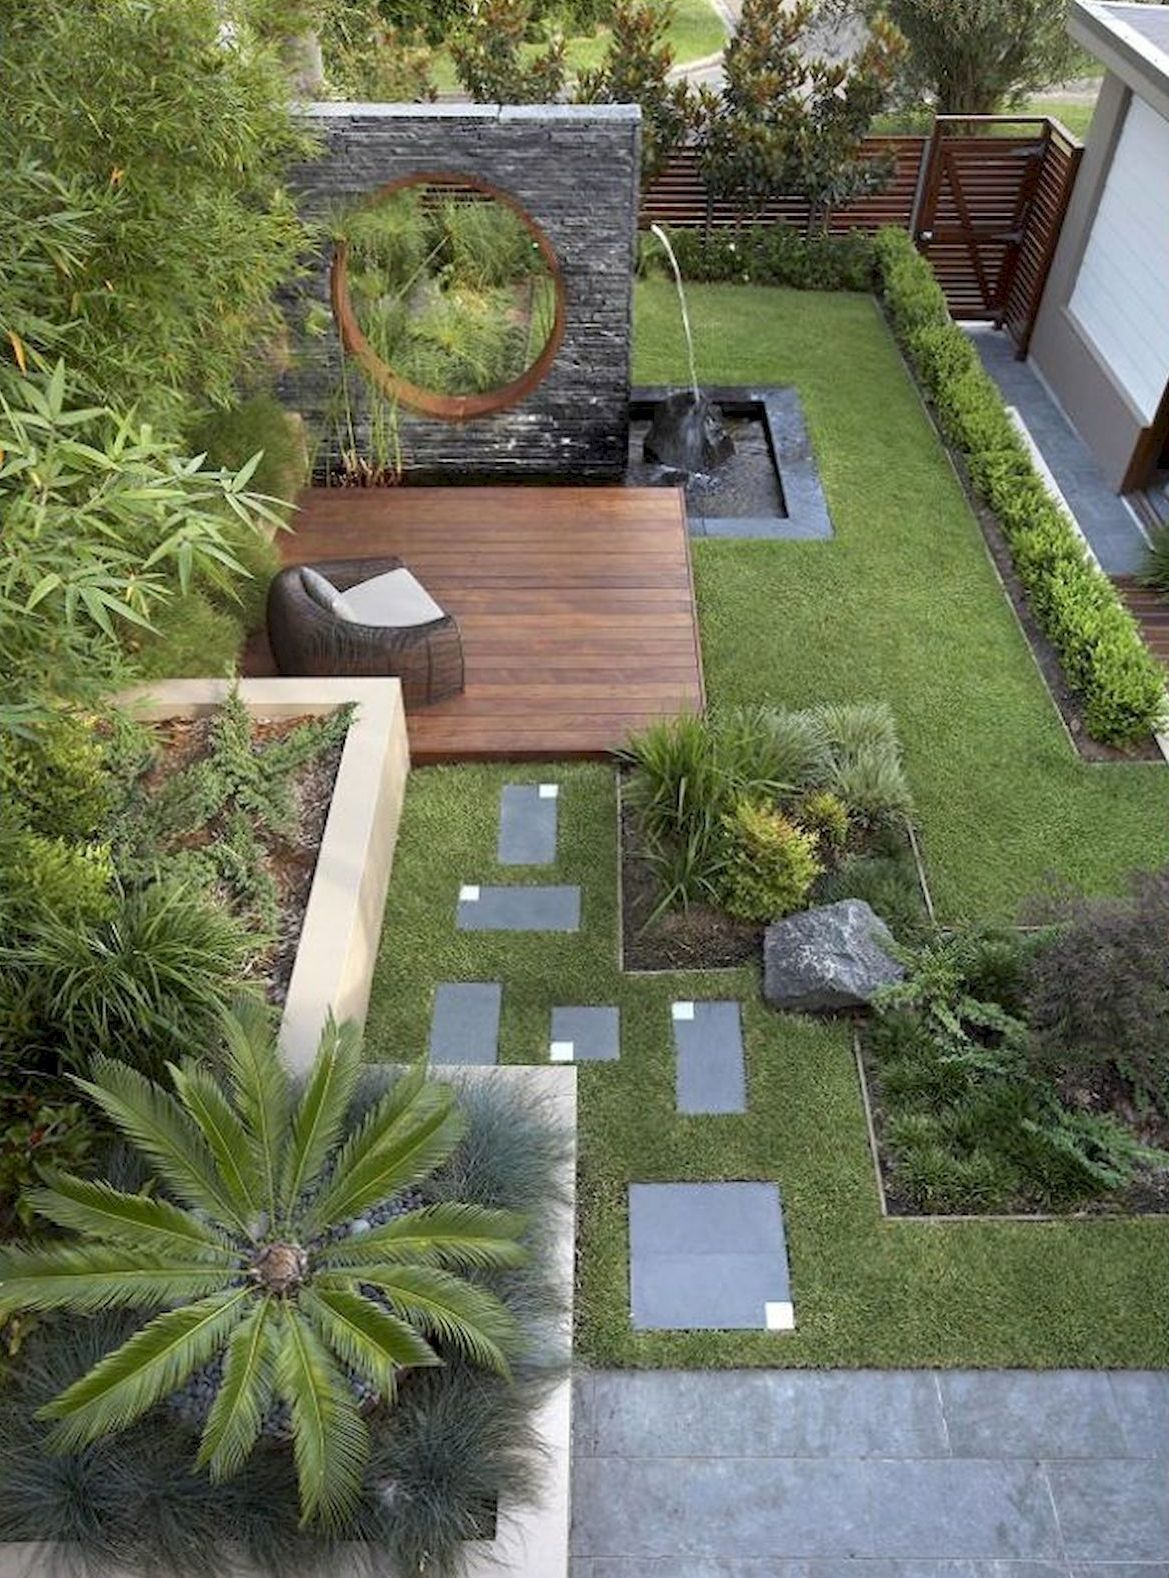 17 Wonderful Backyard Landscaping Ideas New House Landscape Ideas intended for 11 Awesome Ideas How to Build Easy Backyard Landscaping Ideas